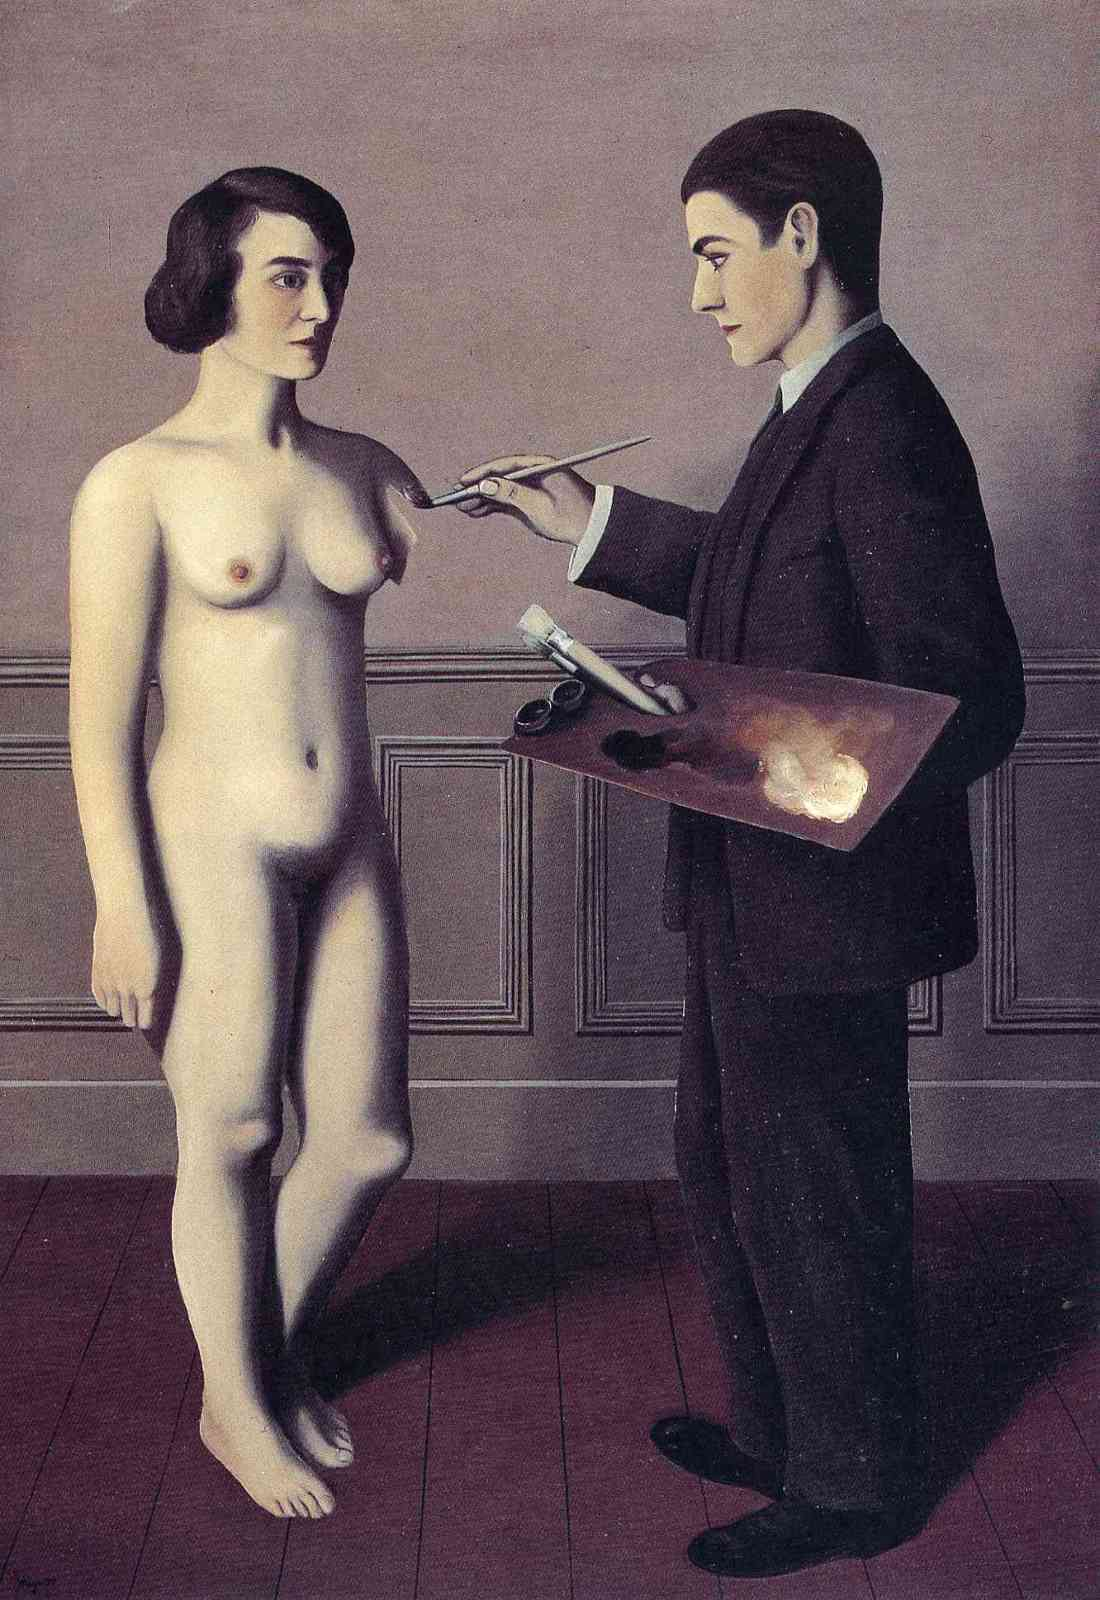 Rene Magritte, Attempting the Impossible, 1928. Collection of the Toyota Municipal Museum of Art, Japan.